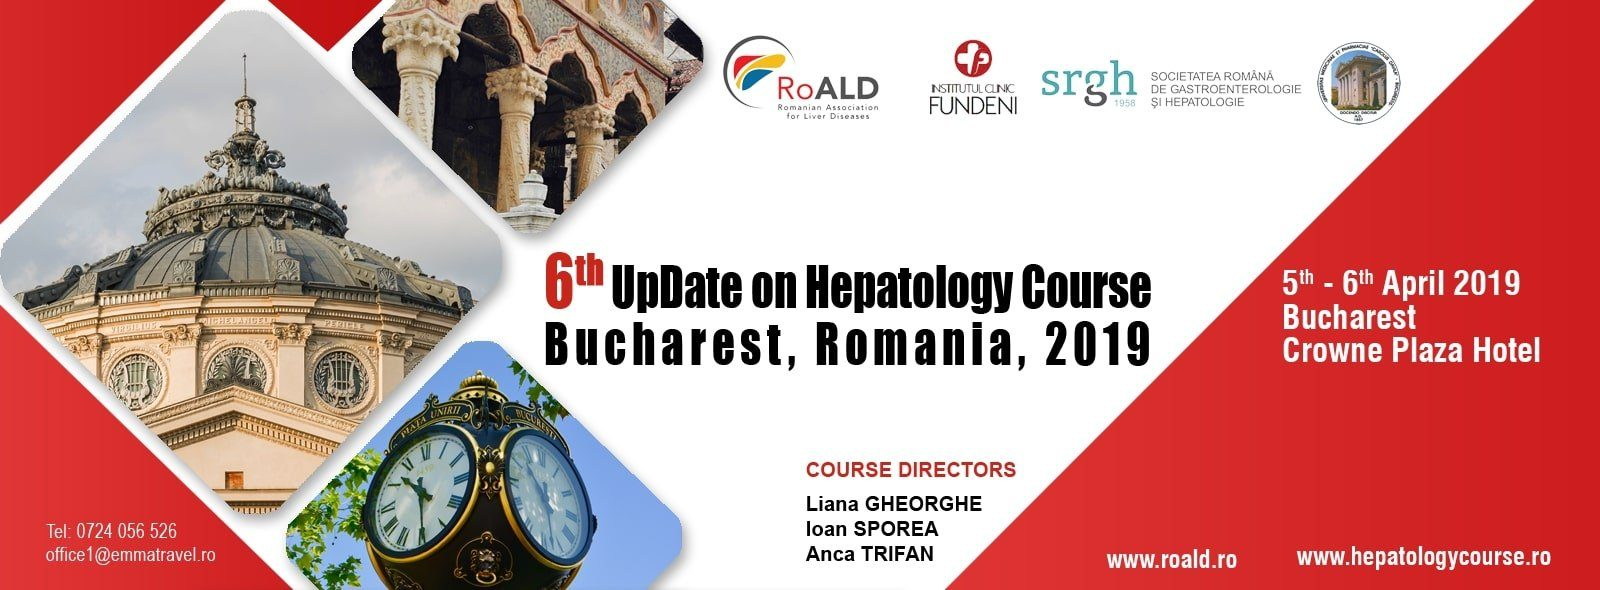 6th UpDate on Hepatology Course Bucharest 2019, Romania